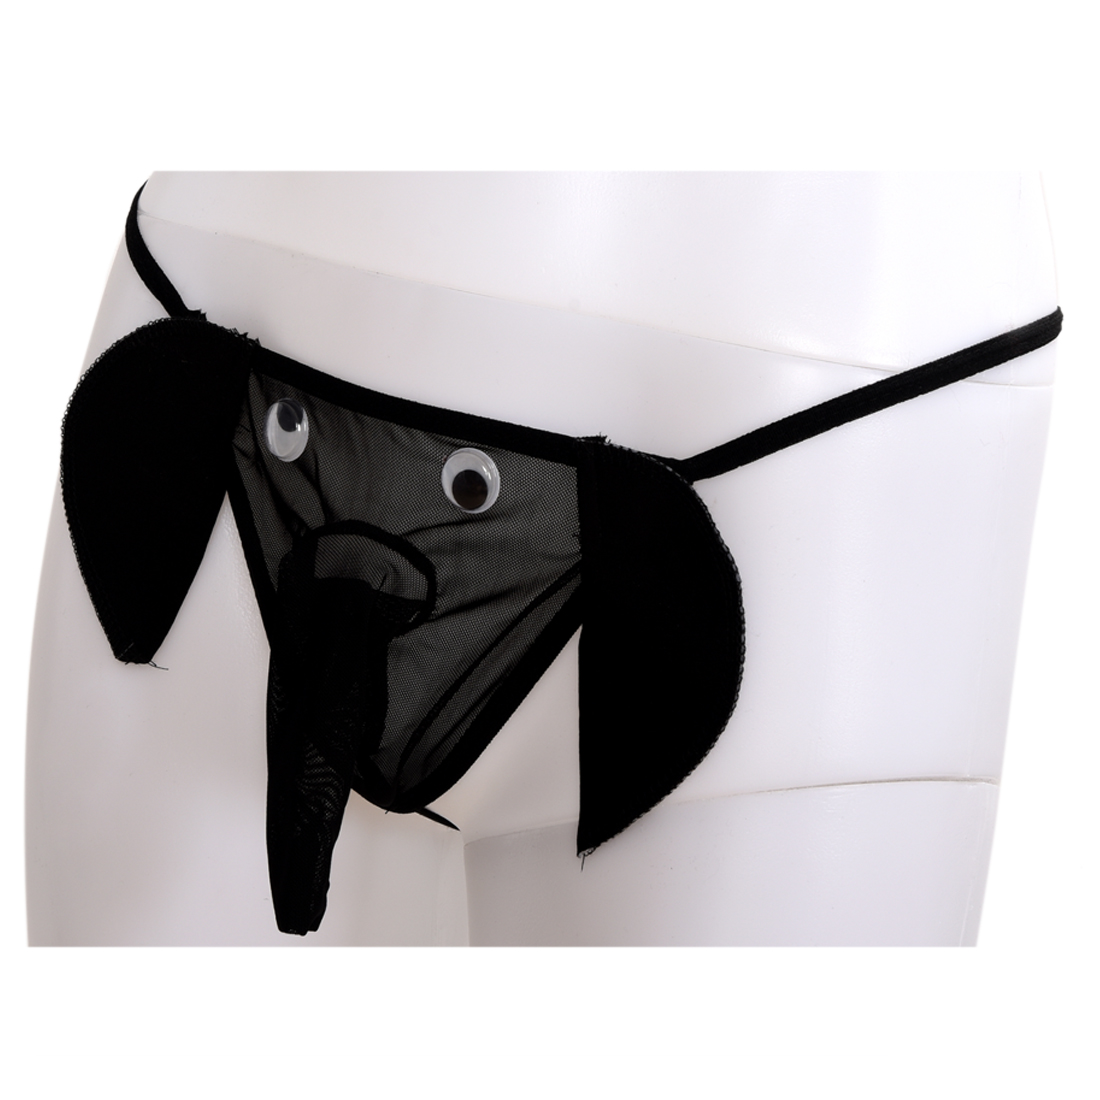 5fbcda91bfb Sexy Men Elephant Underwear Pouch Briefs Thongs Funny G string Black-in G- Strings   Thongs from Men s Clothing   Accessories on Aliexpress.com